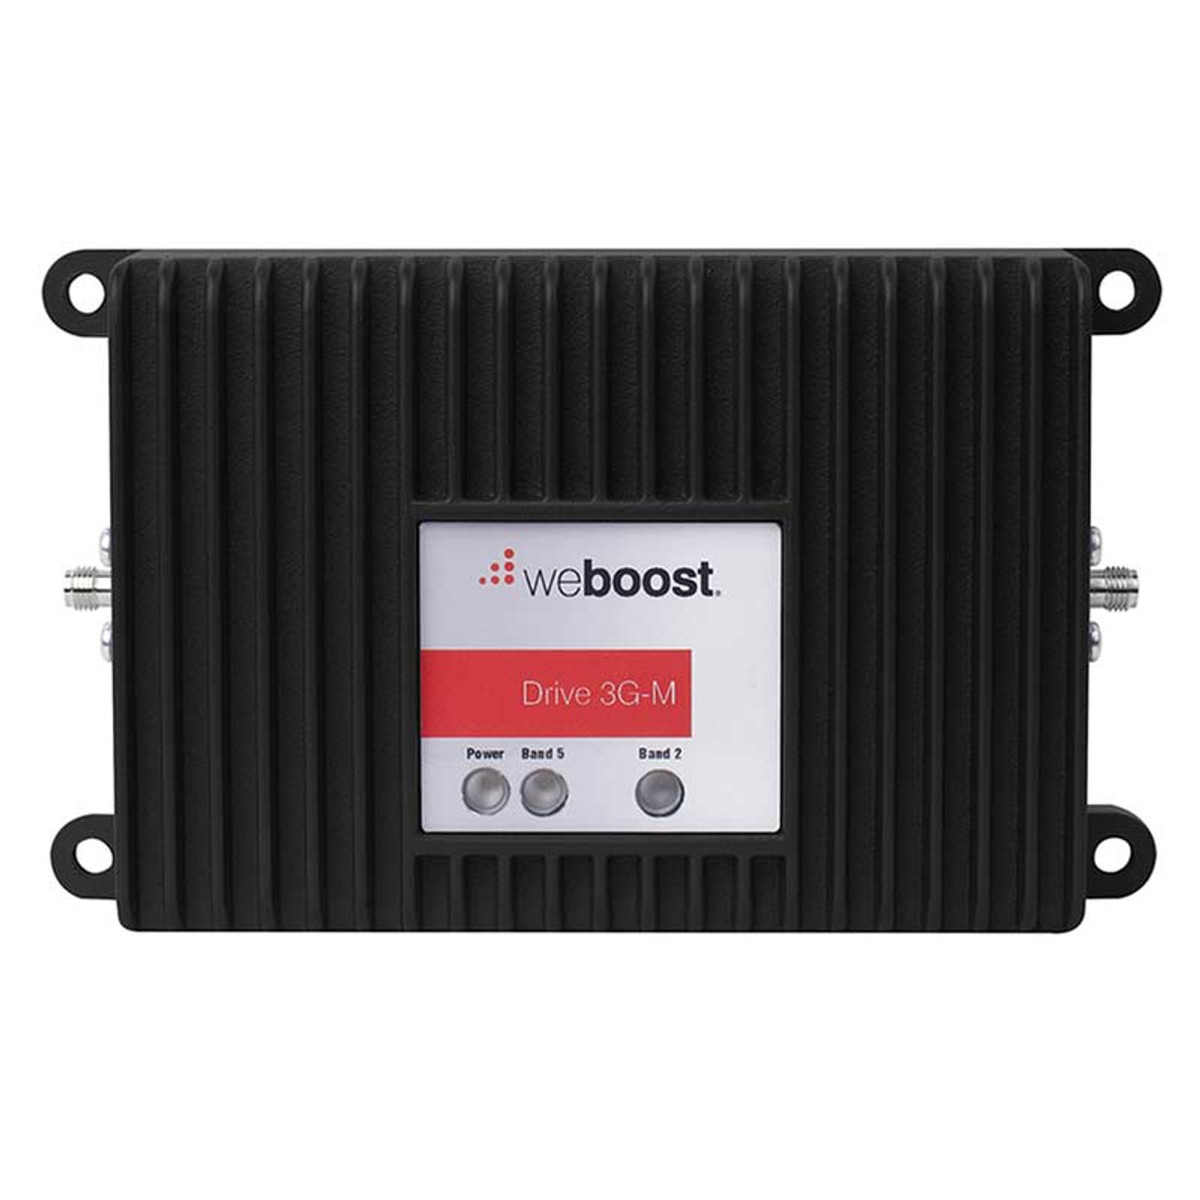 weBoost Drive 3G-M Cell Phone Signal Booster | 470102 Amp